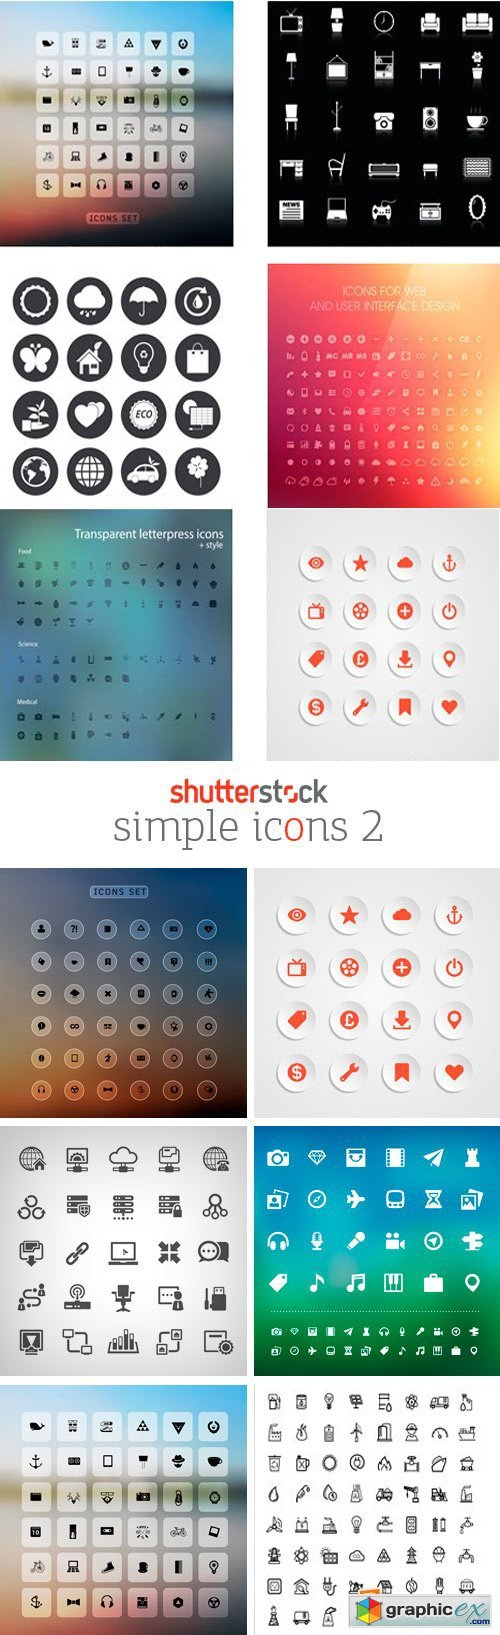 Amazing SS - Simple Icons 2, 25xEPS